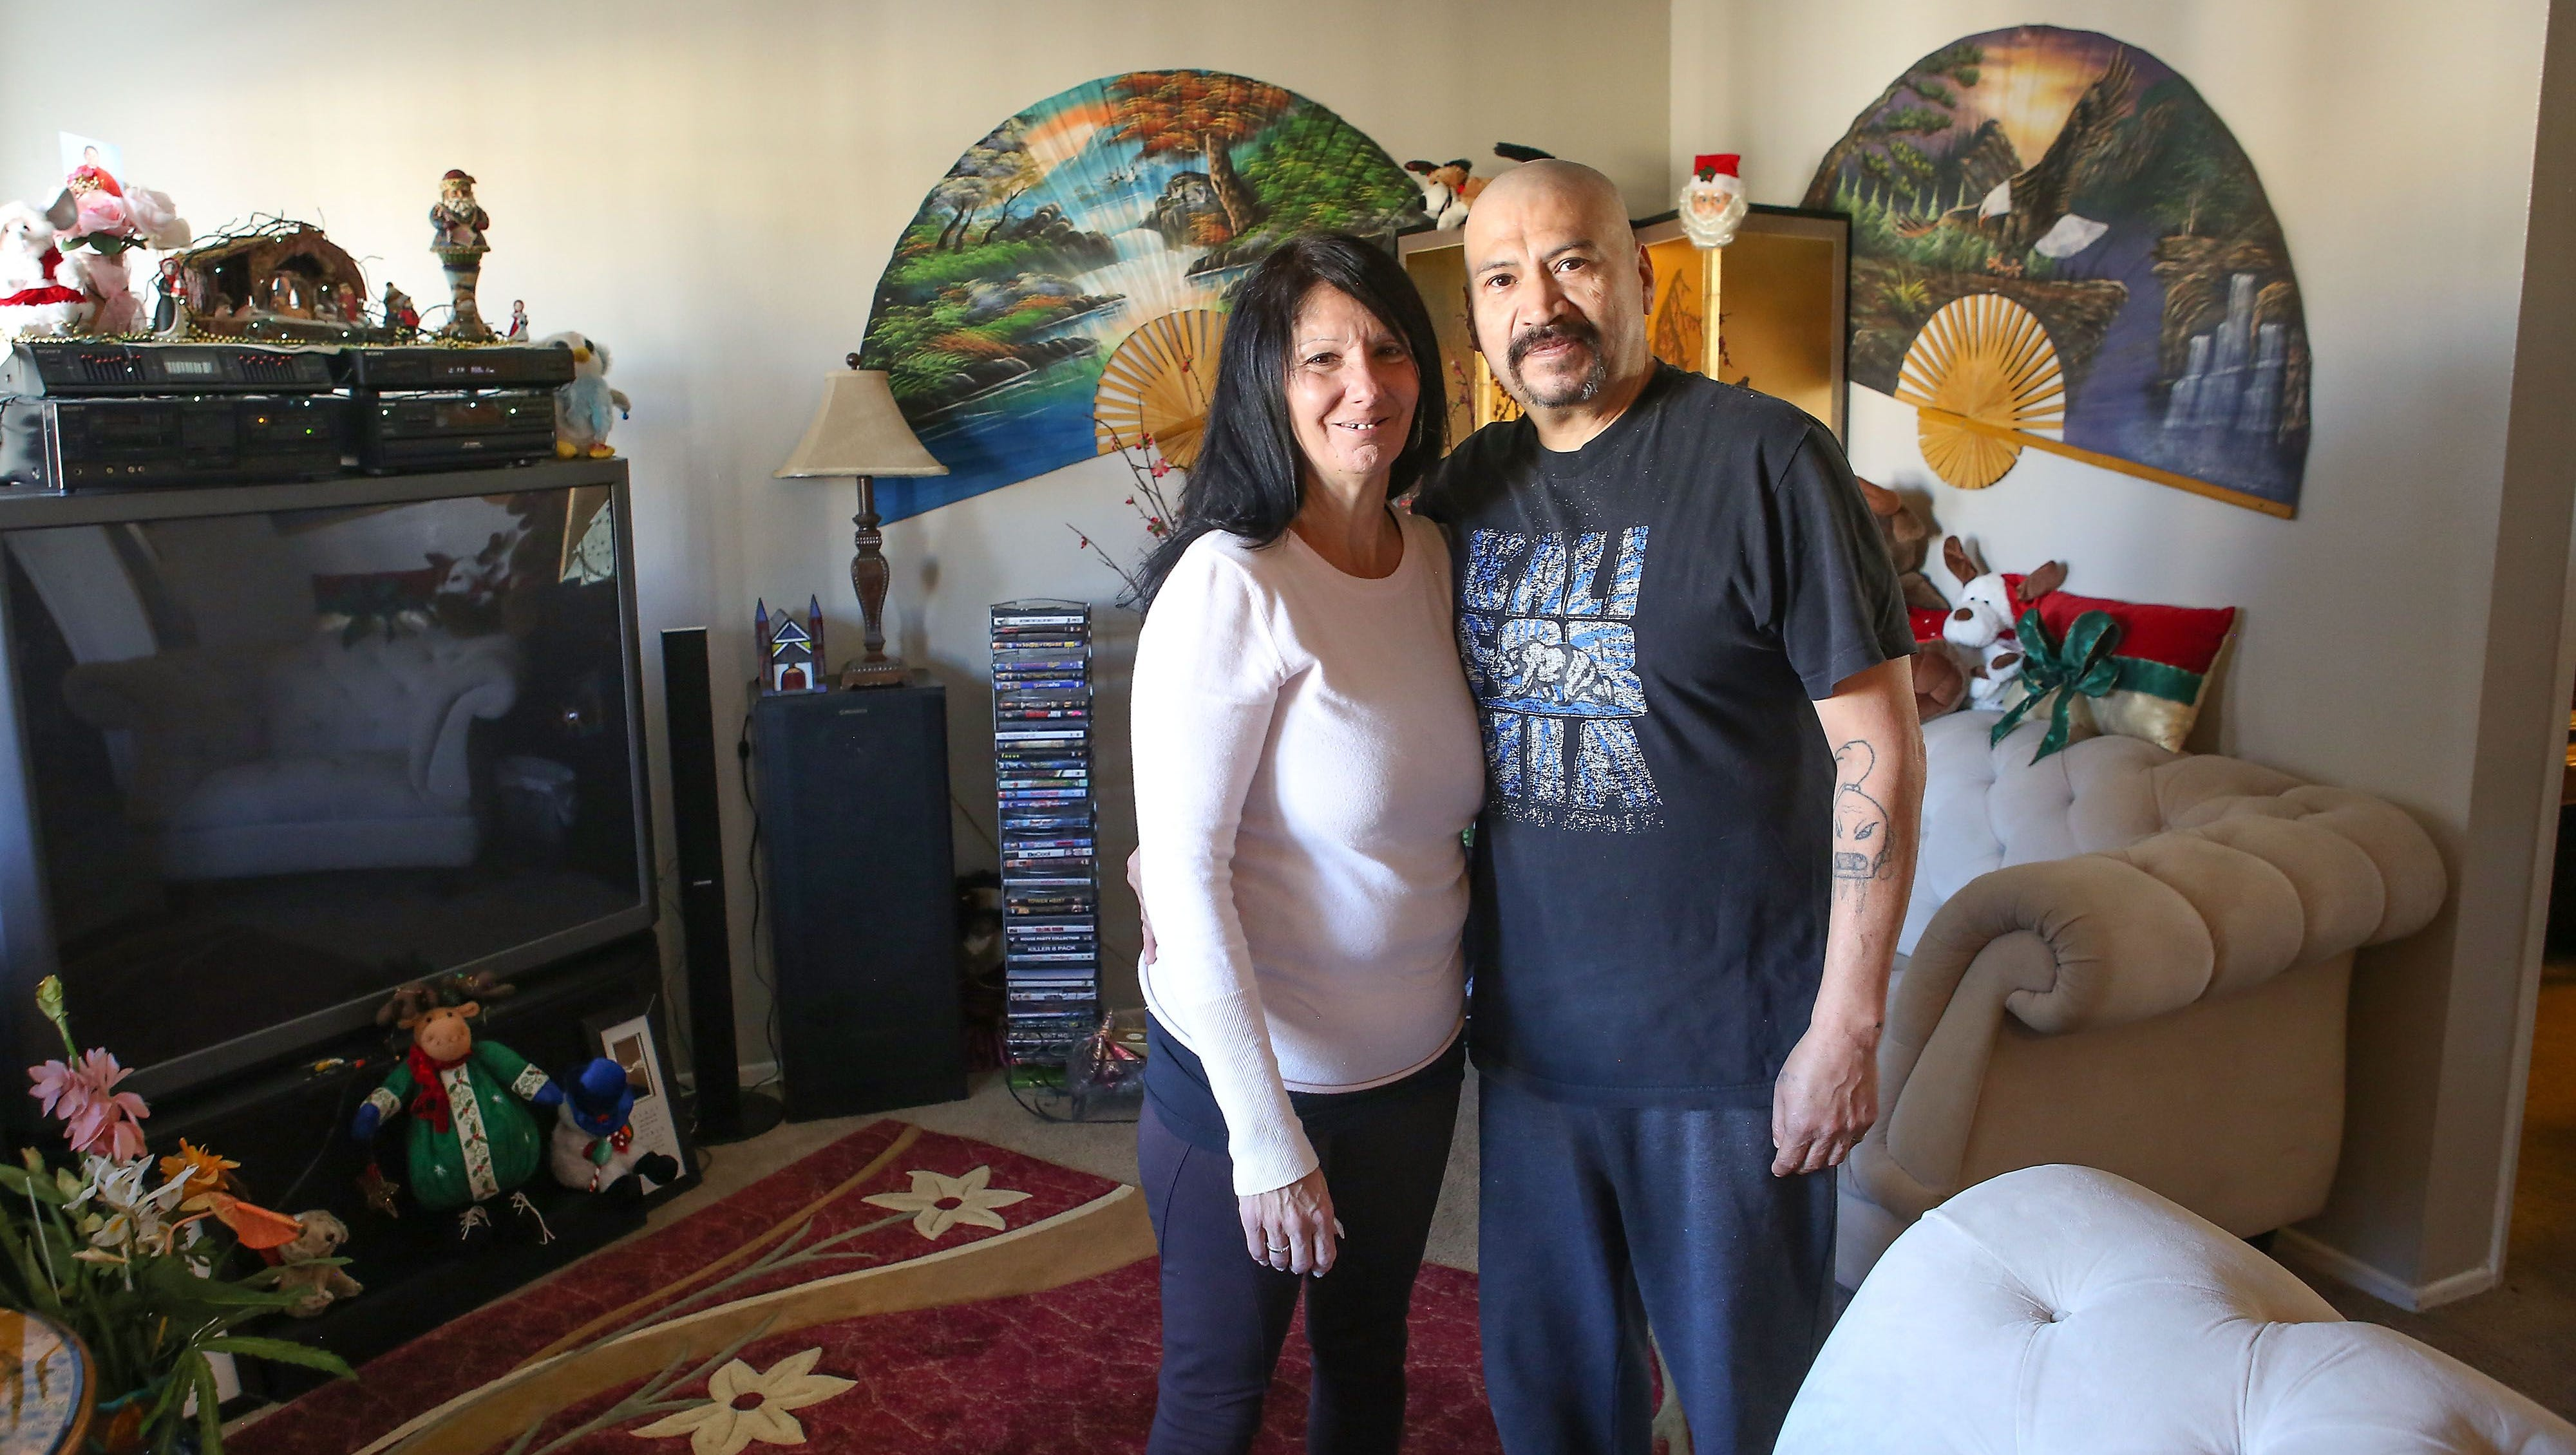 Homelessness in the valley: This couple was homeless for seven years. Now they're adjusting to life in an apartment